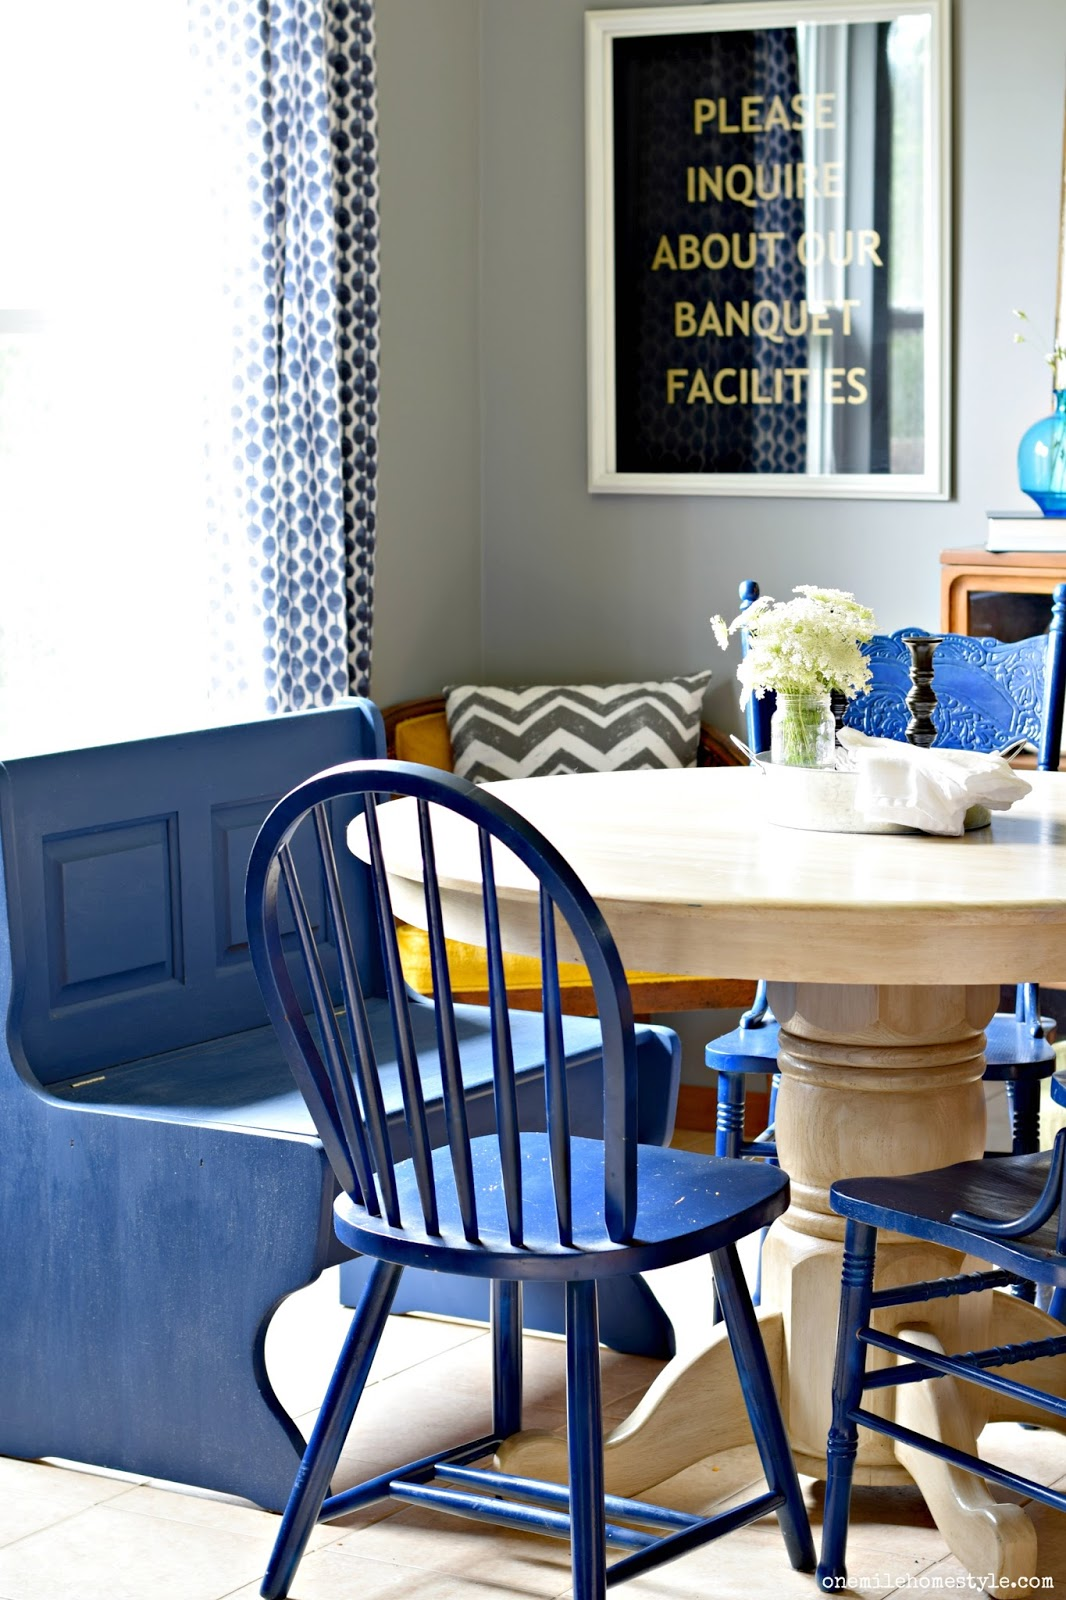 farmhouse kitchen bench makeover with diva of diy s chalk mix paint get the look of this navy blue and white farmhouse dining room with diva of diy